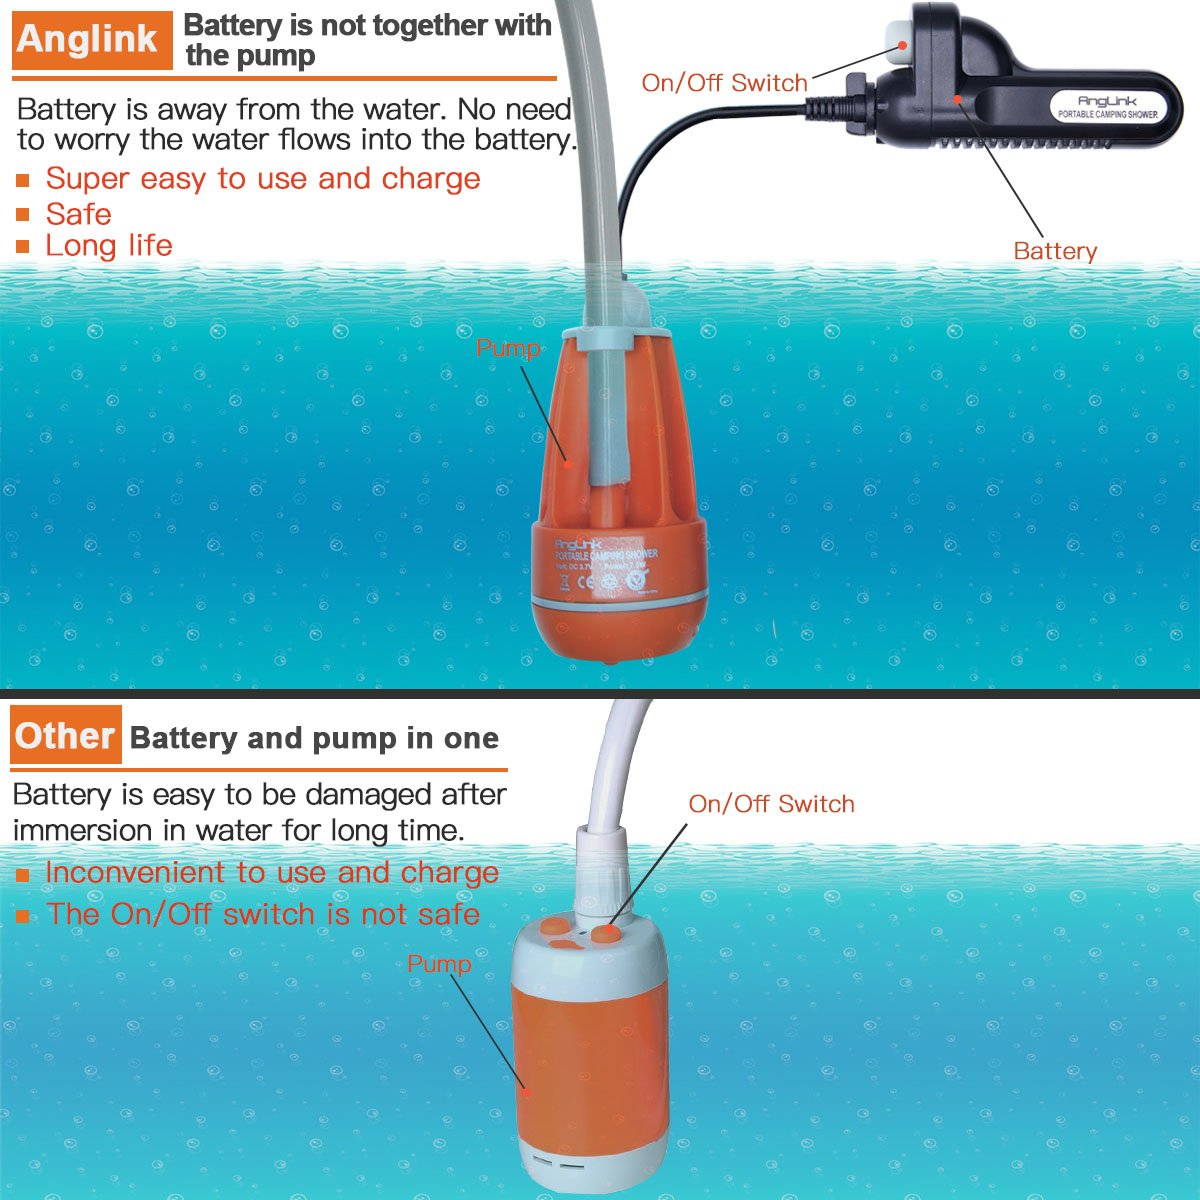 Amazon.com : Anglink Upgraded Portable Camping Shower, Battery ...